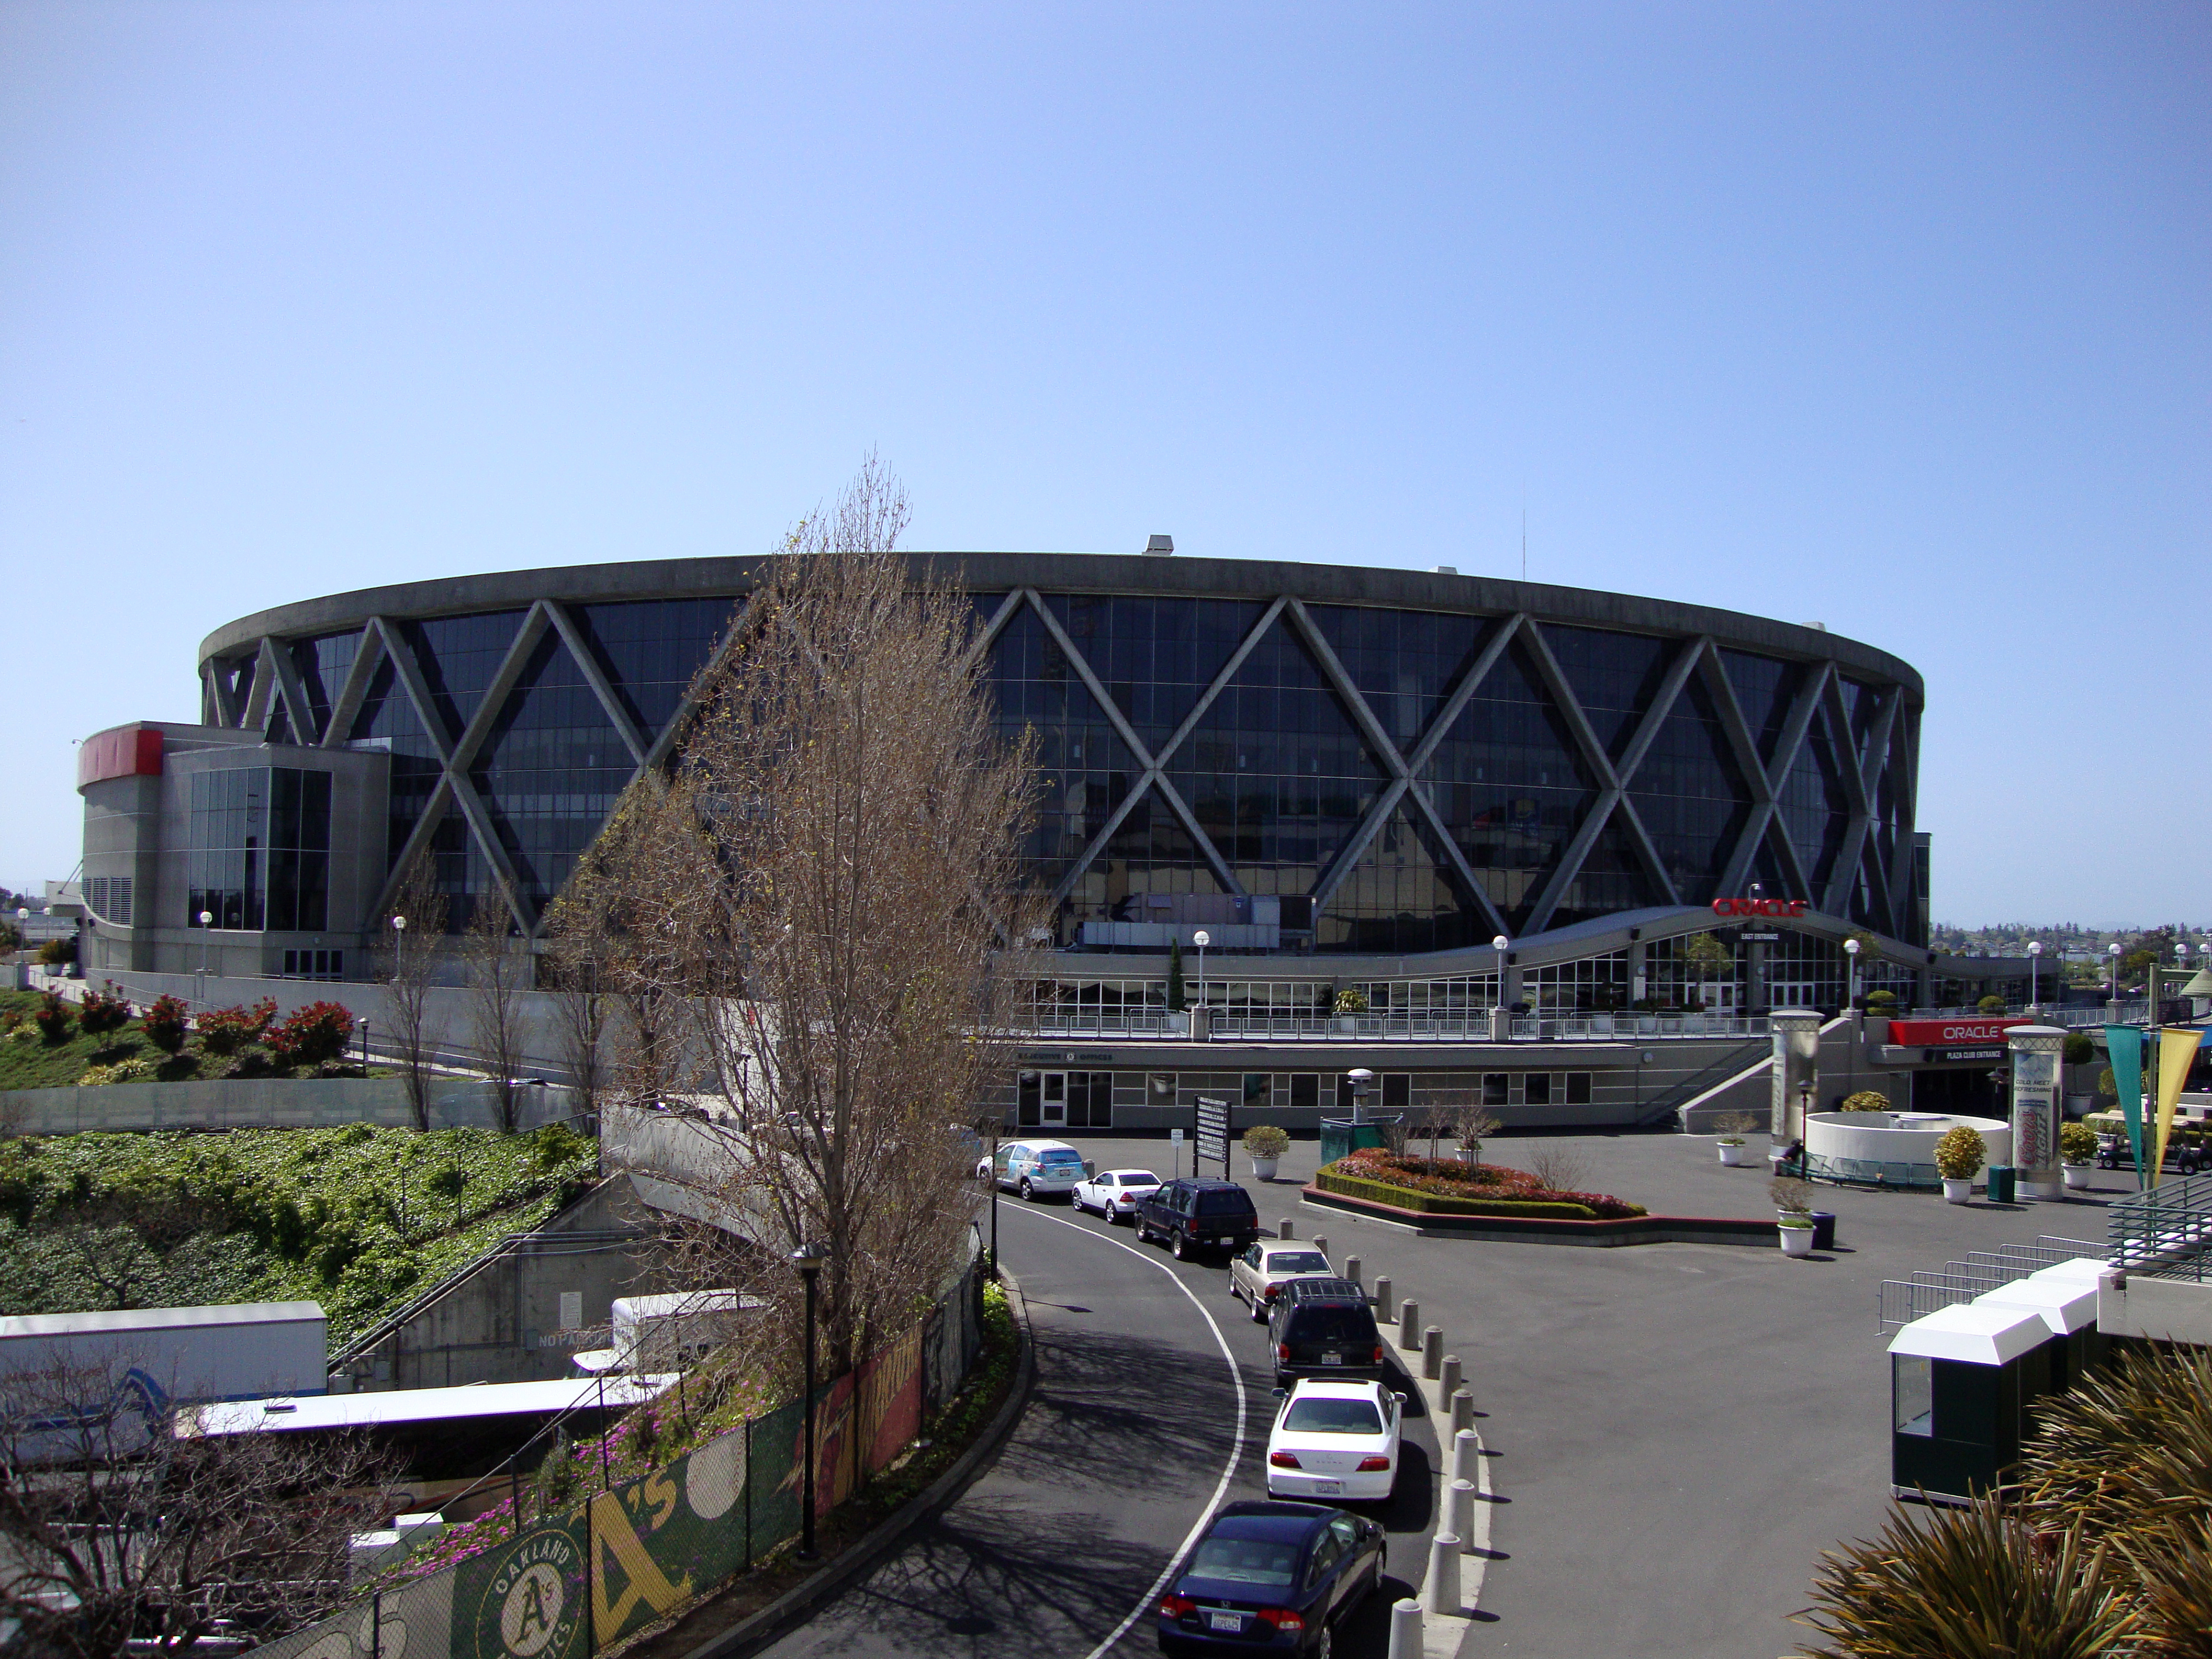 Oakland, USA - April 8, 2010: Oracle Arena in Oakland on April 8, 2010. The Oracle Arena is a multi-purpose sports and concert venue which is home to the Golden State Warriors of the NBA.